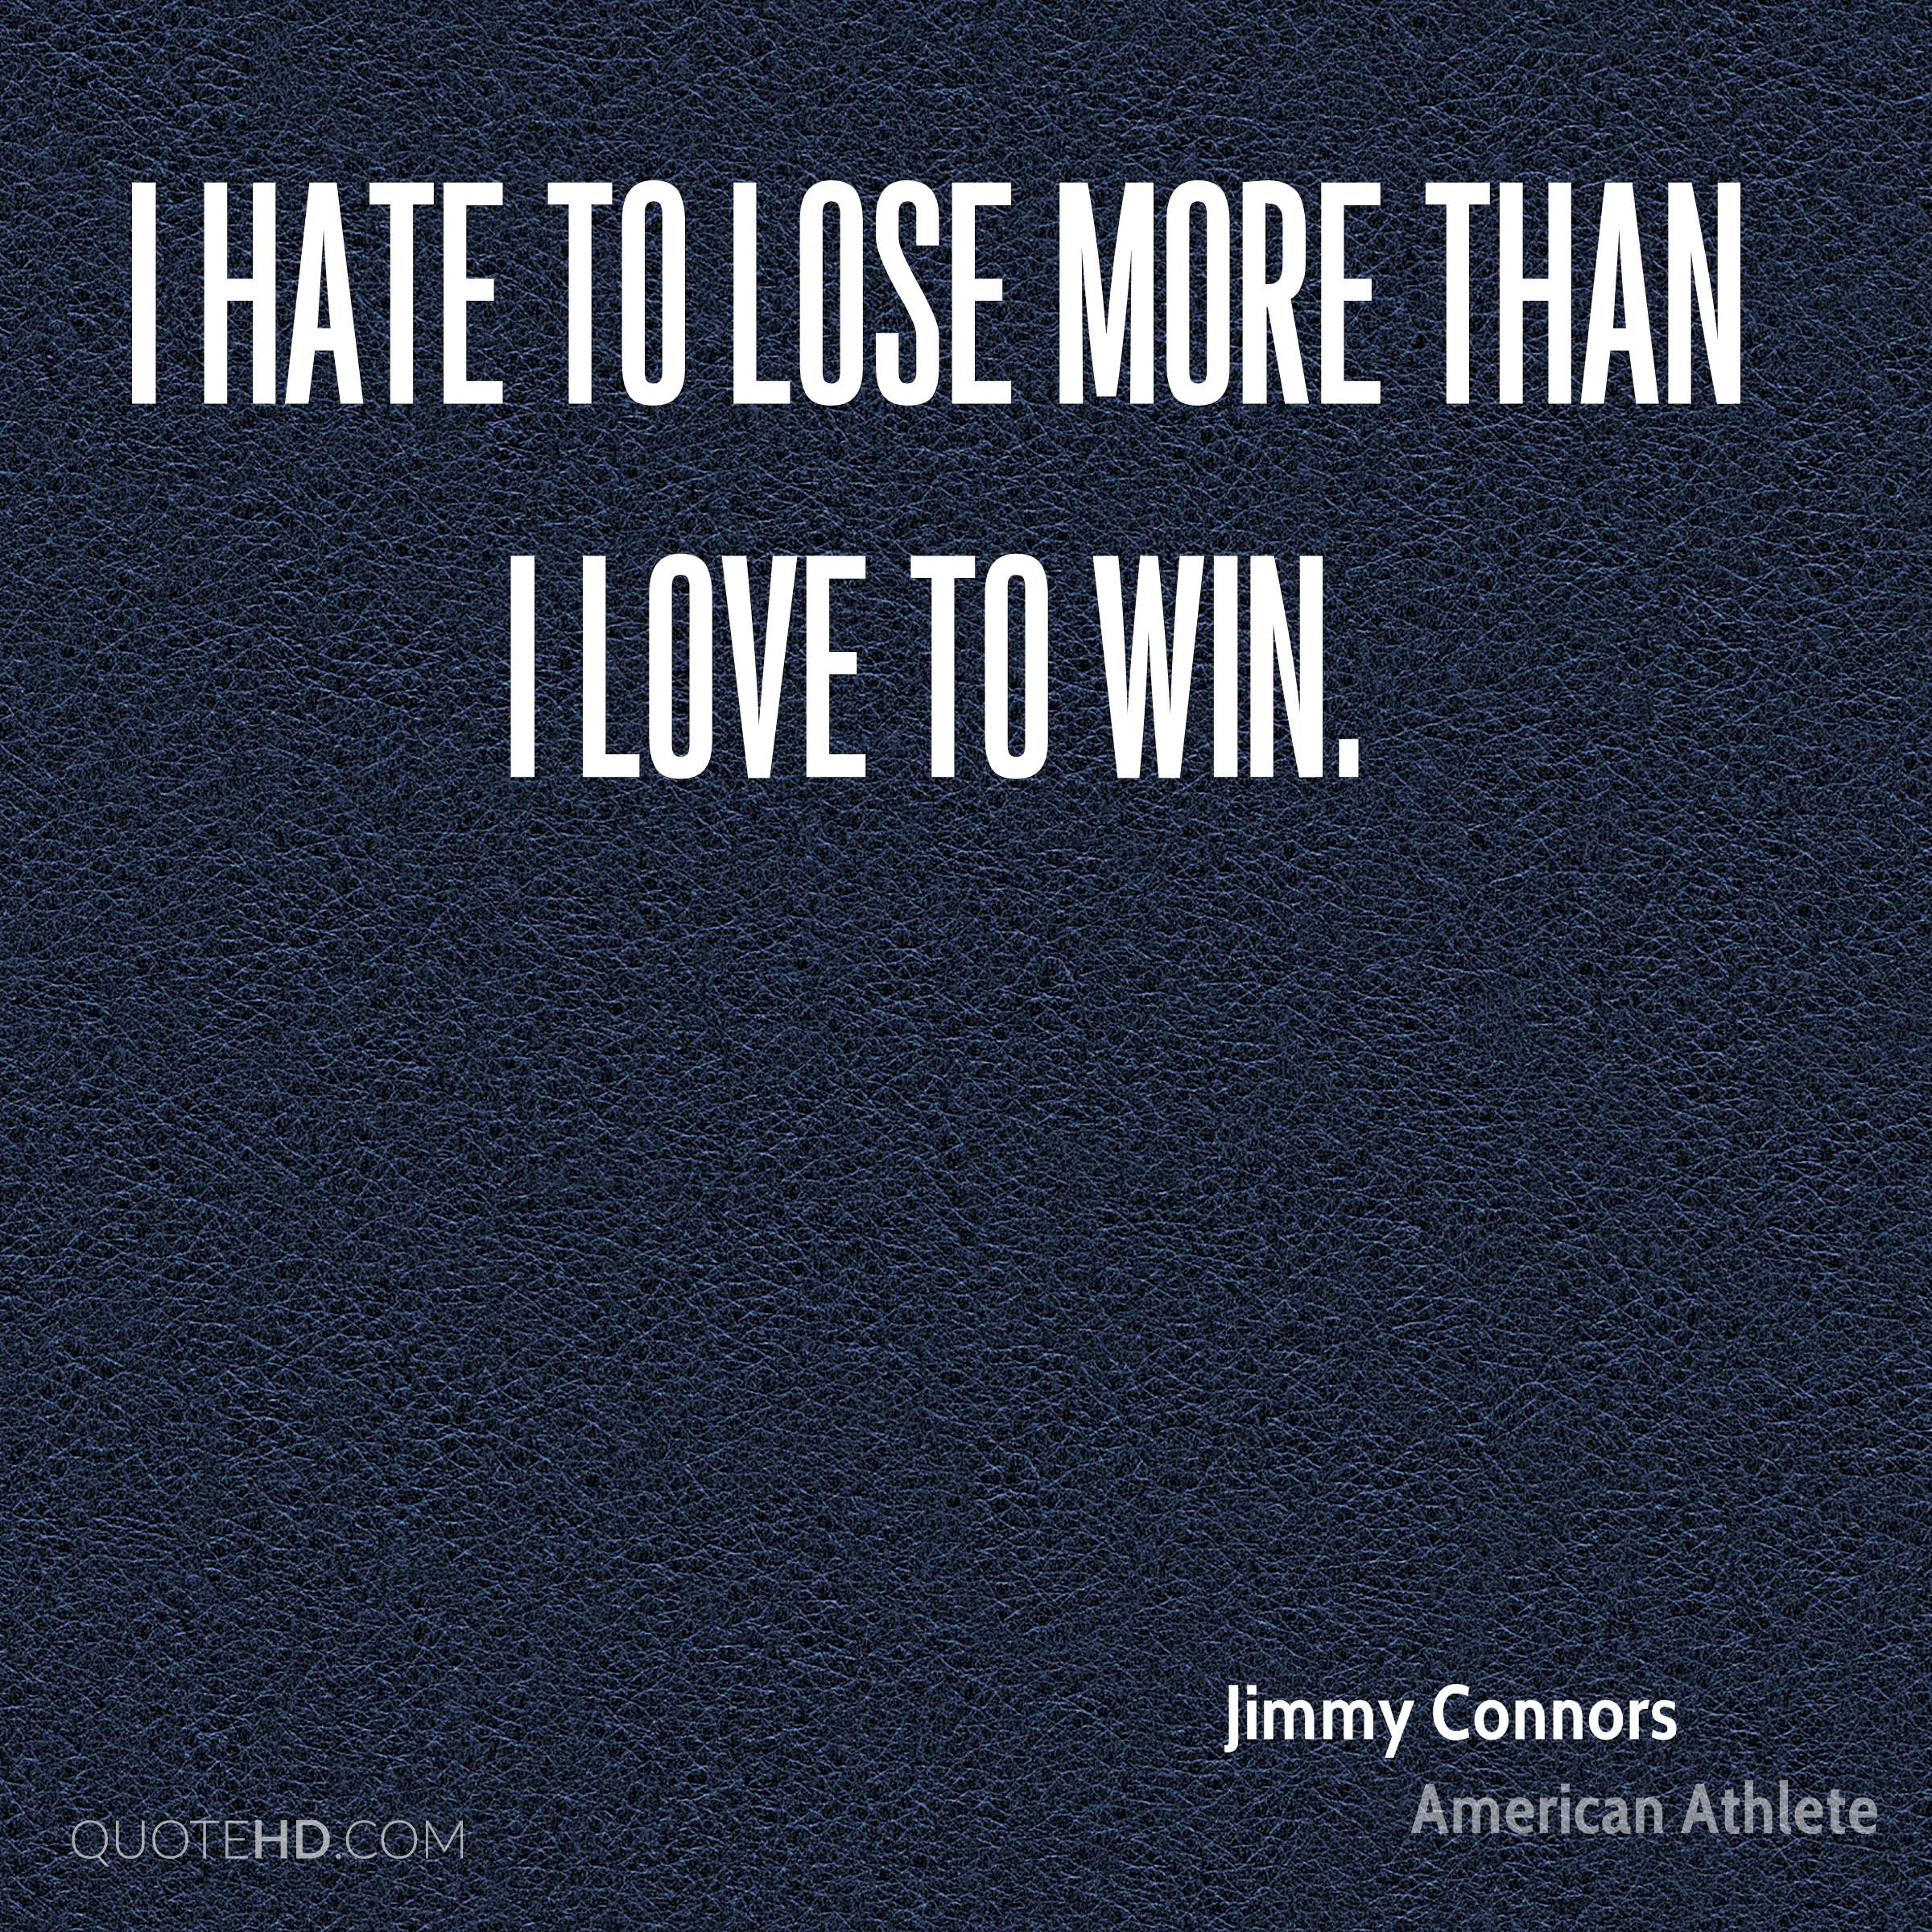 I hate to lose more than I love to win.